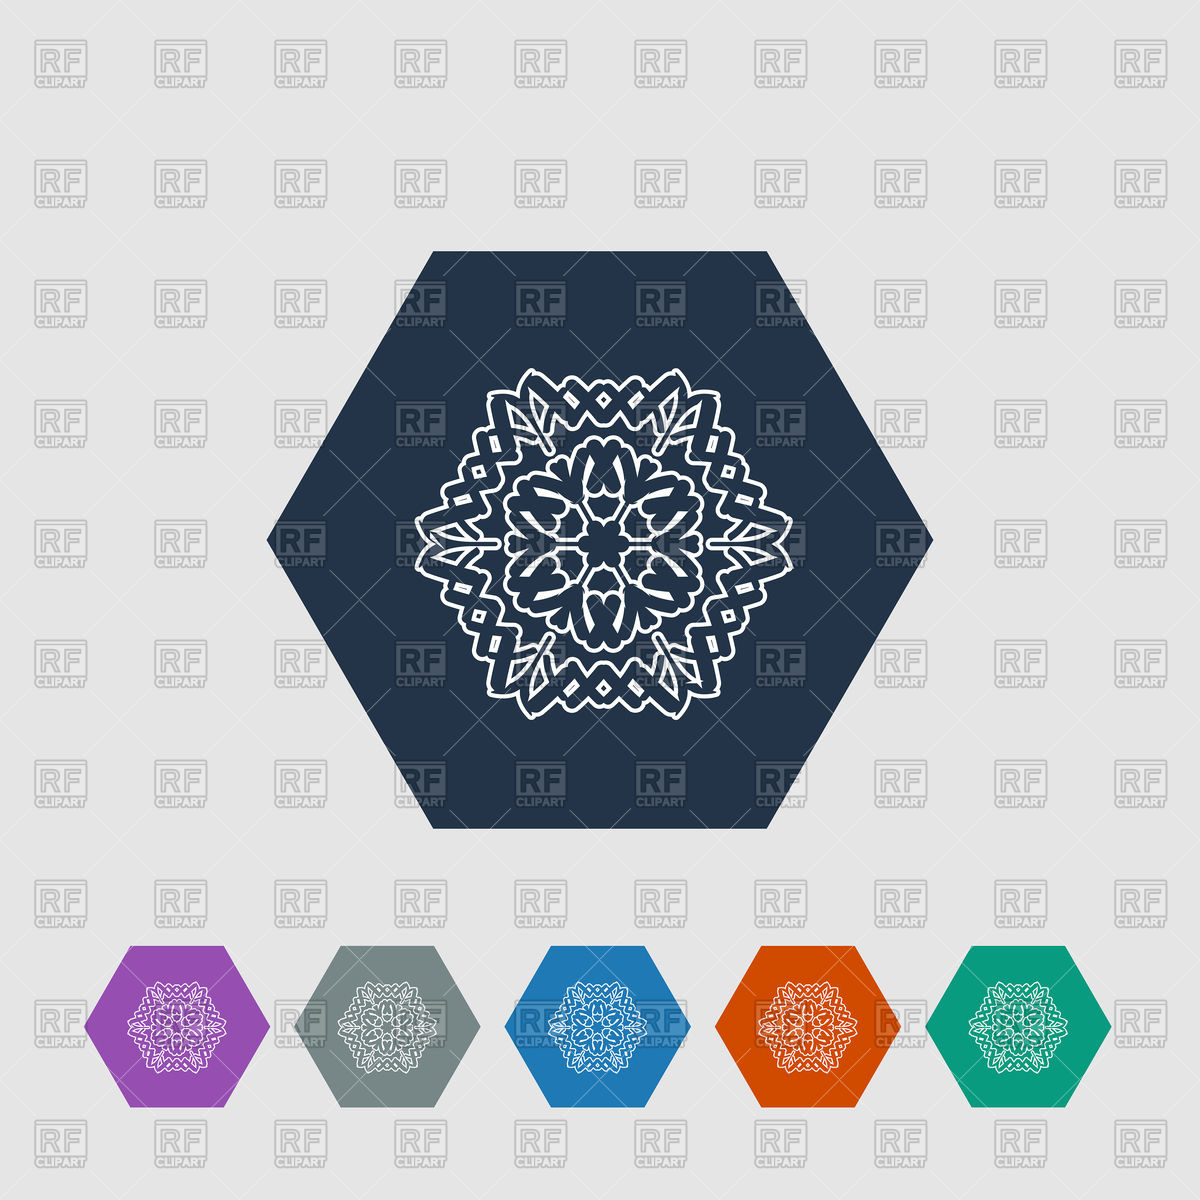 1200x1200 Snowflake Hexagon Flat Icon Vector Image Vector Artwork Of Icons